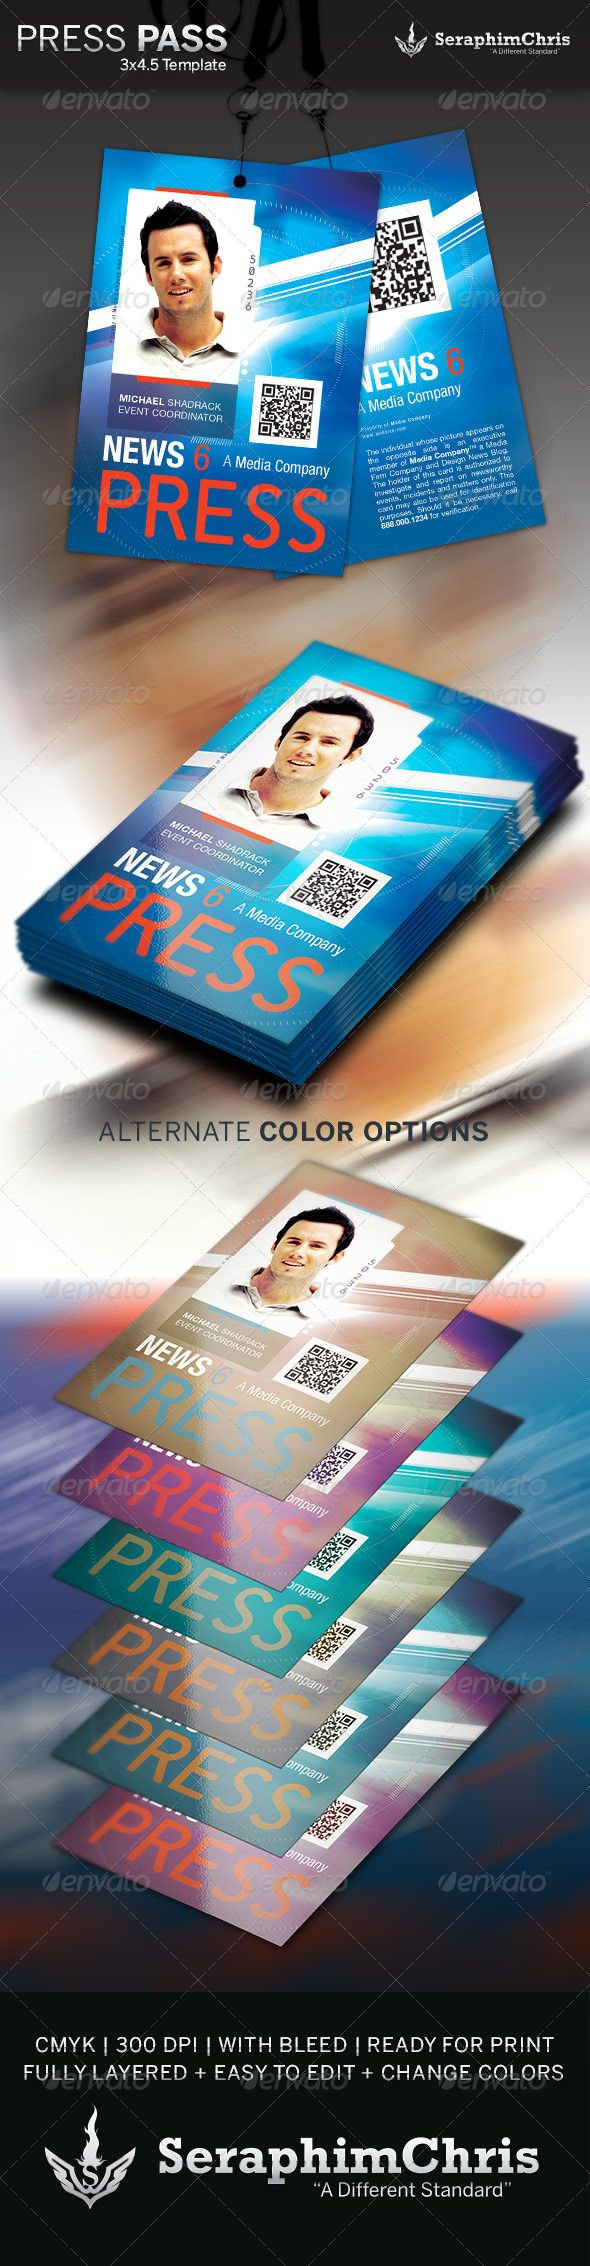 15 best ID card design images on Pinterest | Business cards, Card ...